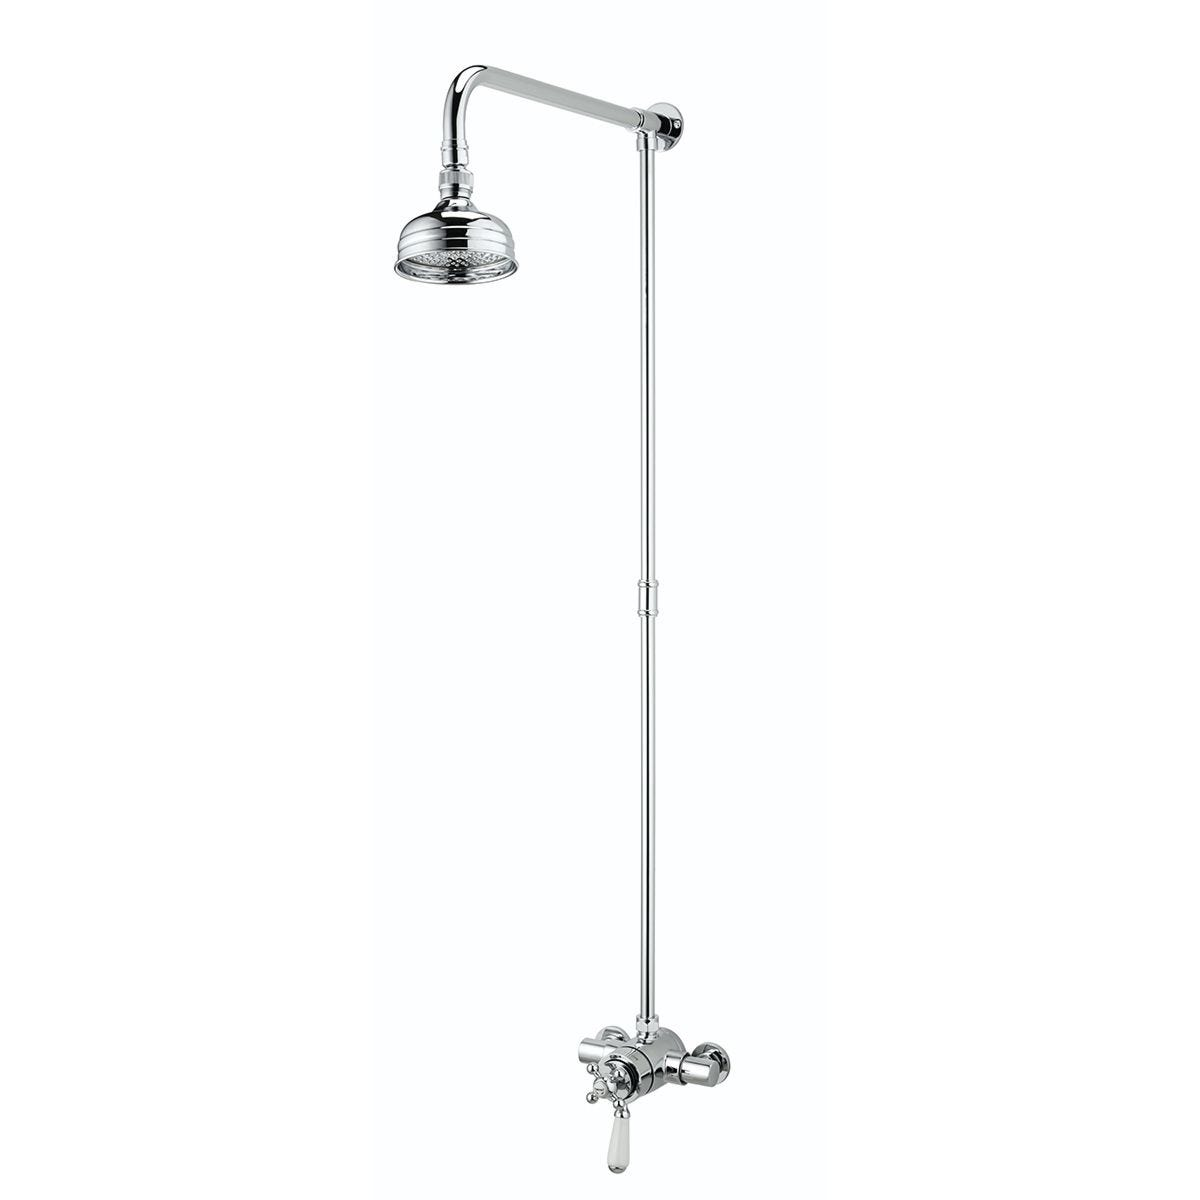 Bristan Regency2 Thermostatic Surface Mounted Dual Control Shower Valve